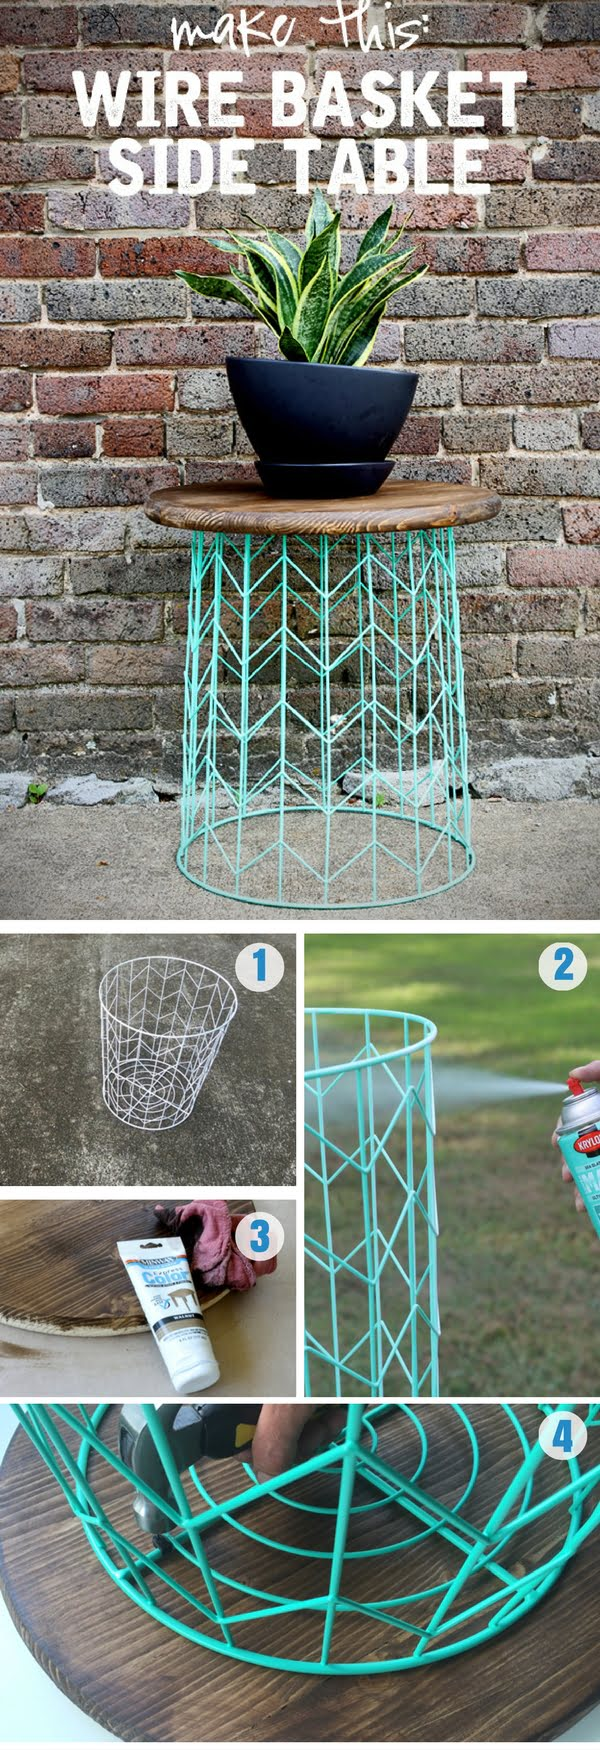 Love the idea for a simple DIY wire basket side table